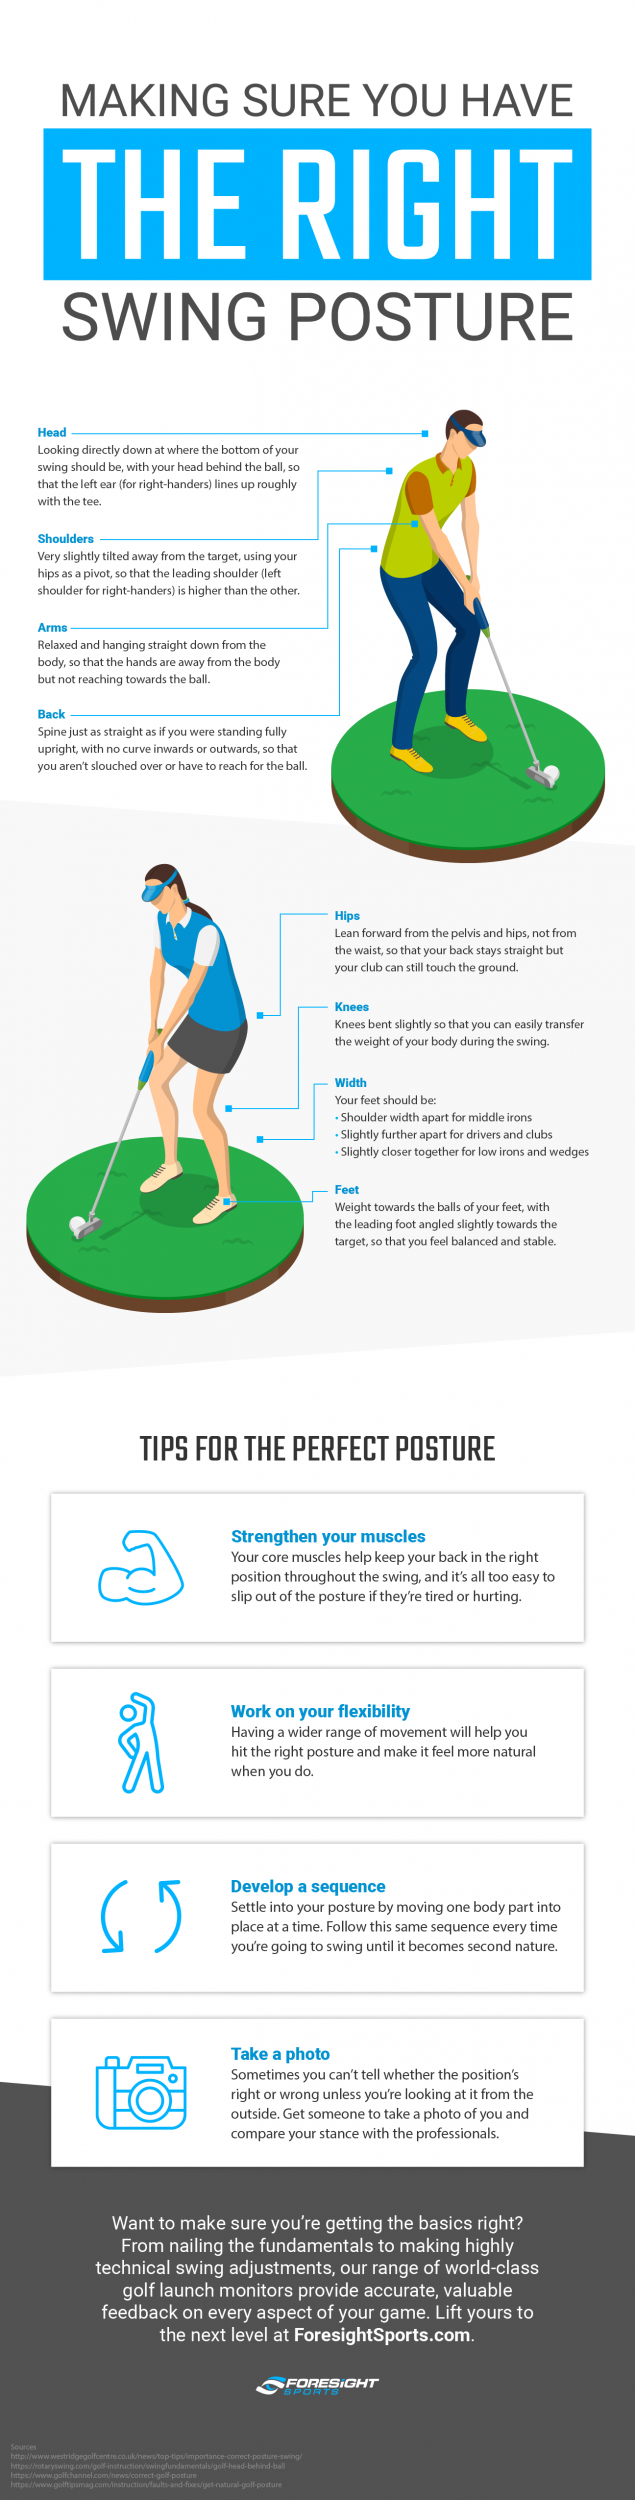 Making Sure You Have the Right Swing Posture (Infographic)